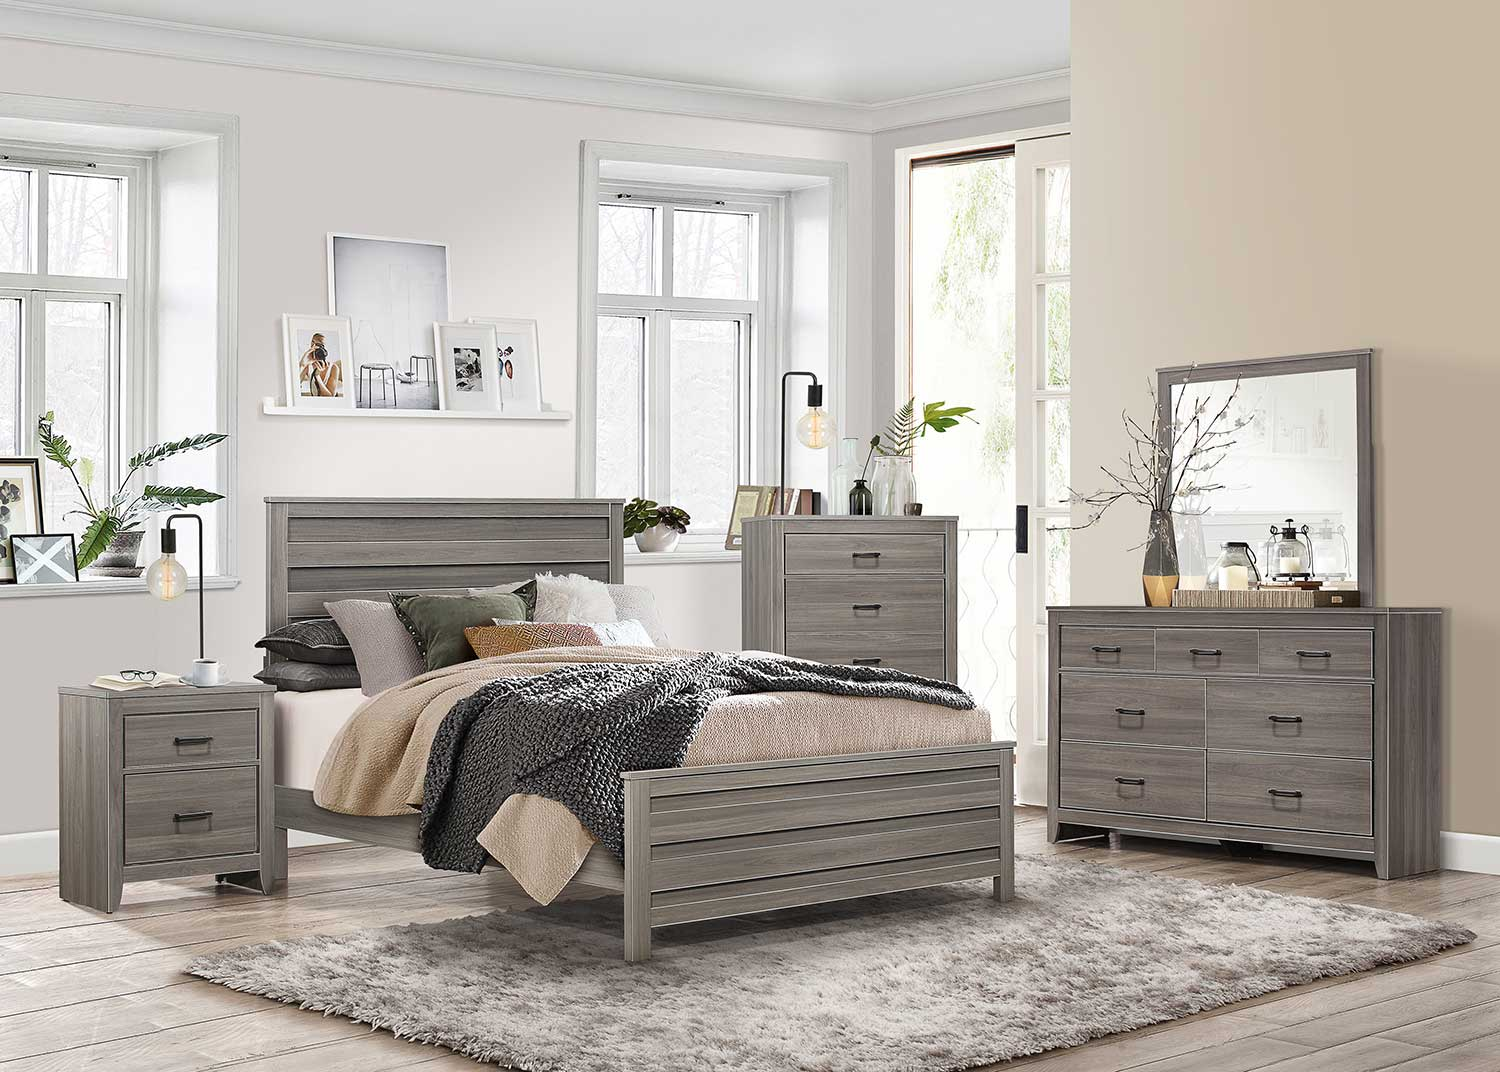 Homelegance Waldorf Bedroom Set - Gray Tone